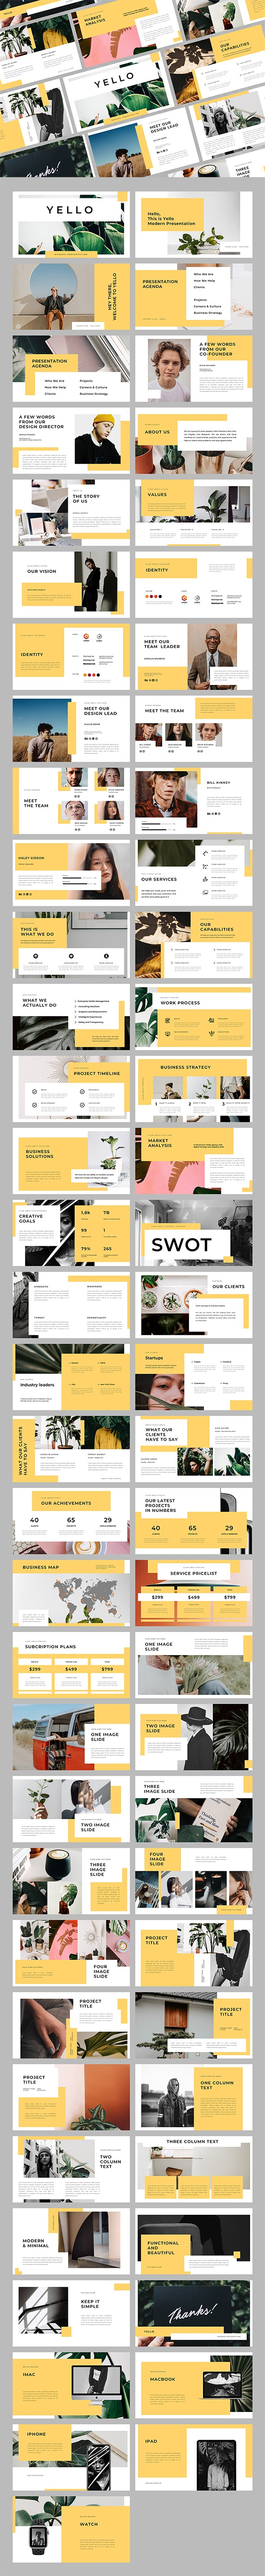 Yello Keynote Template - Creative Keynote Templates